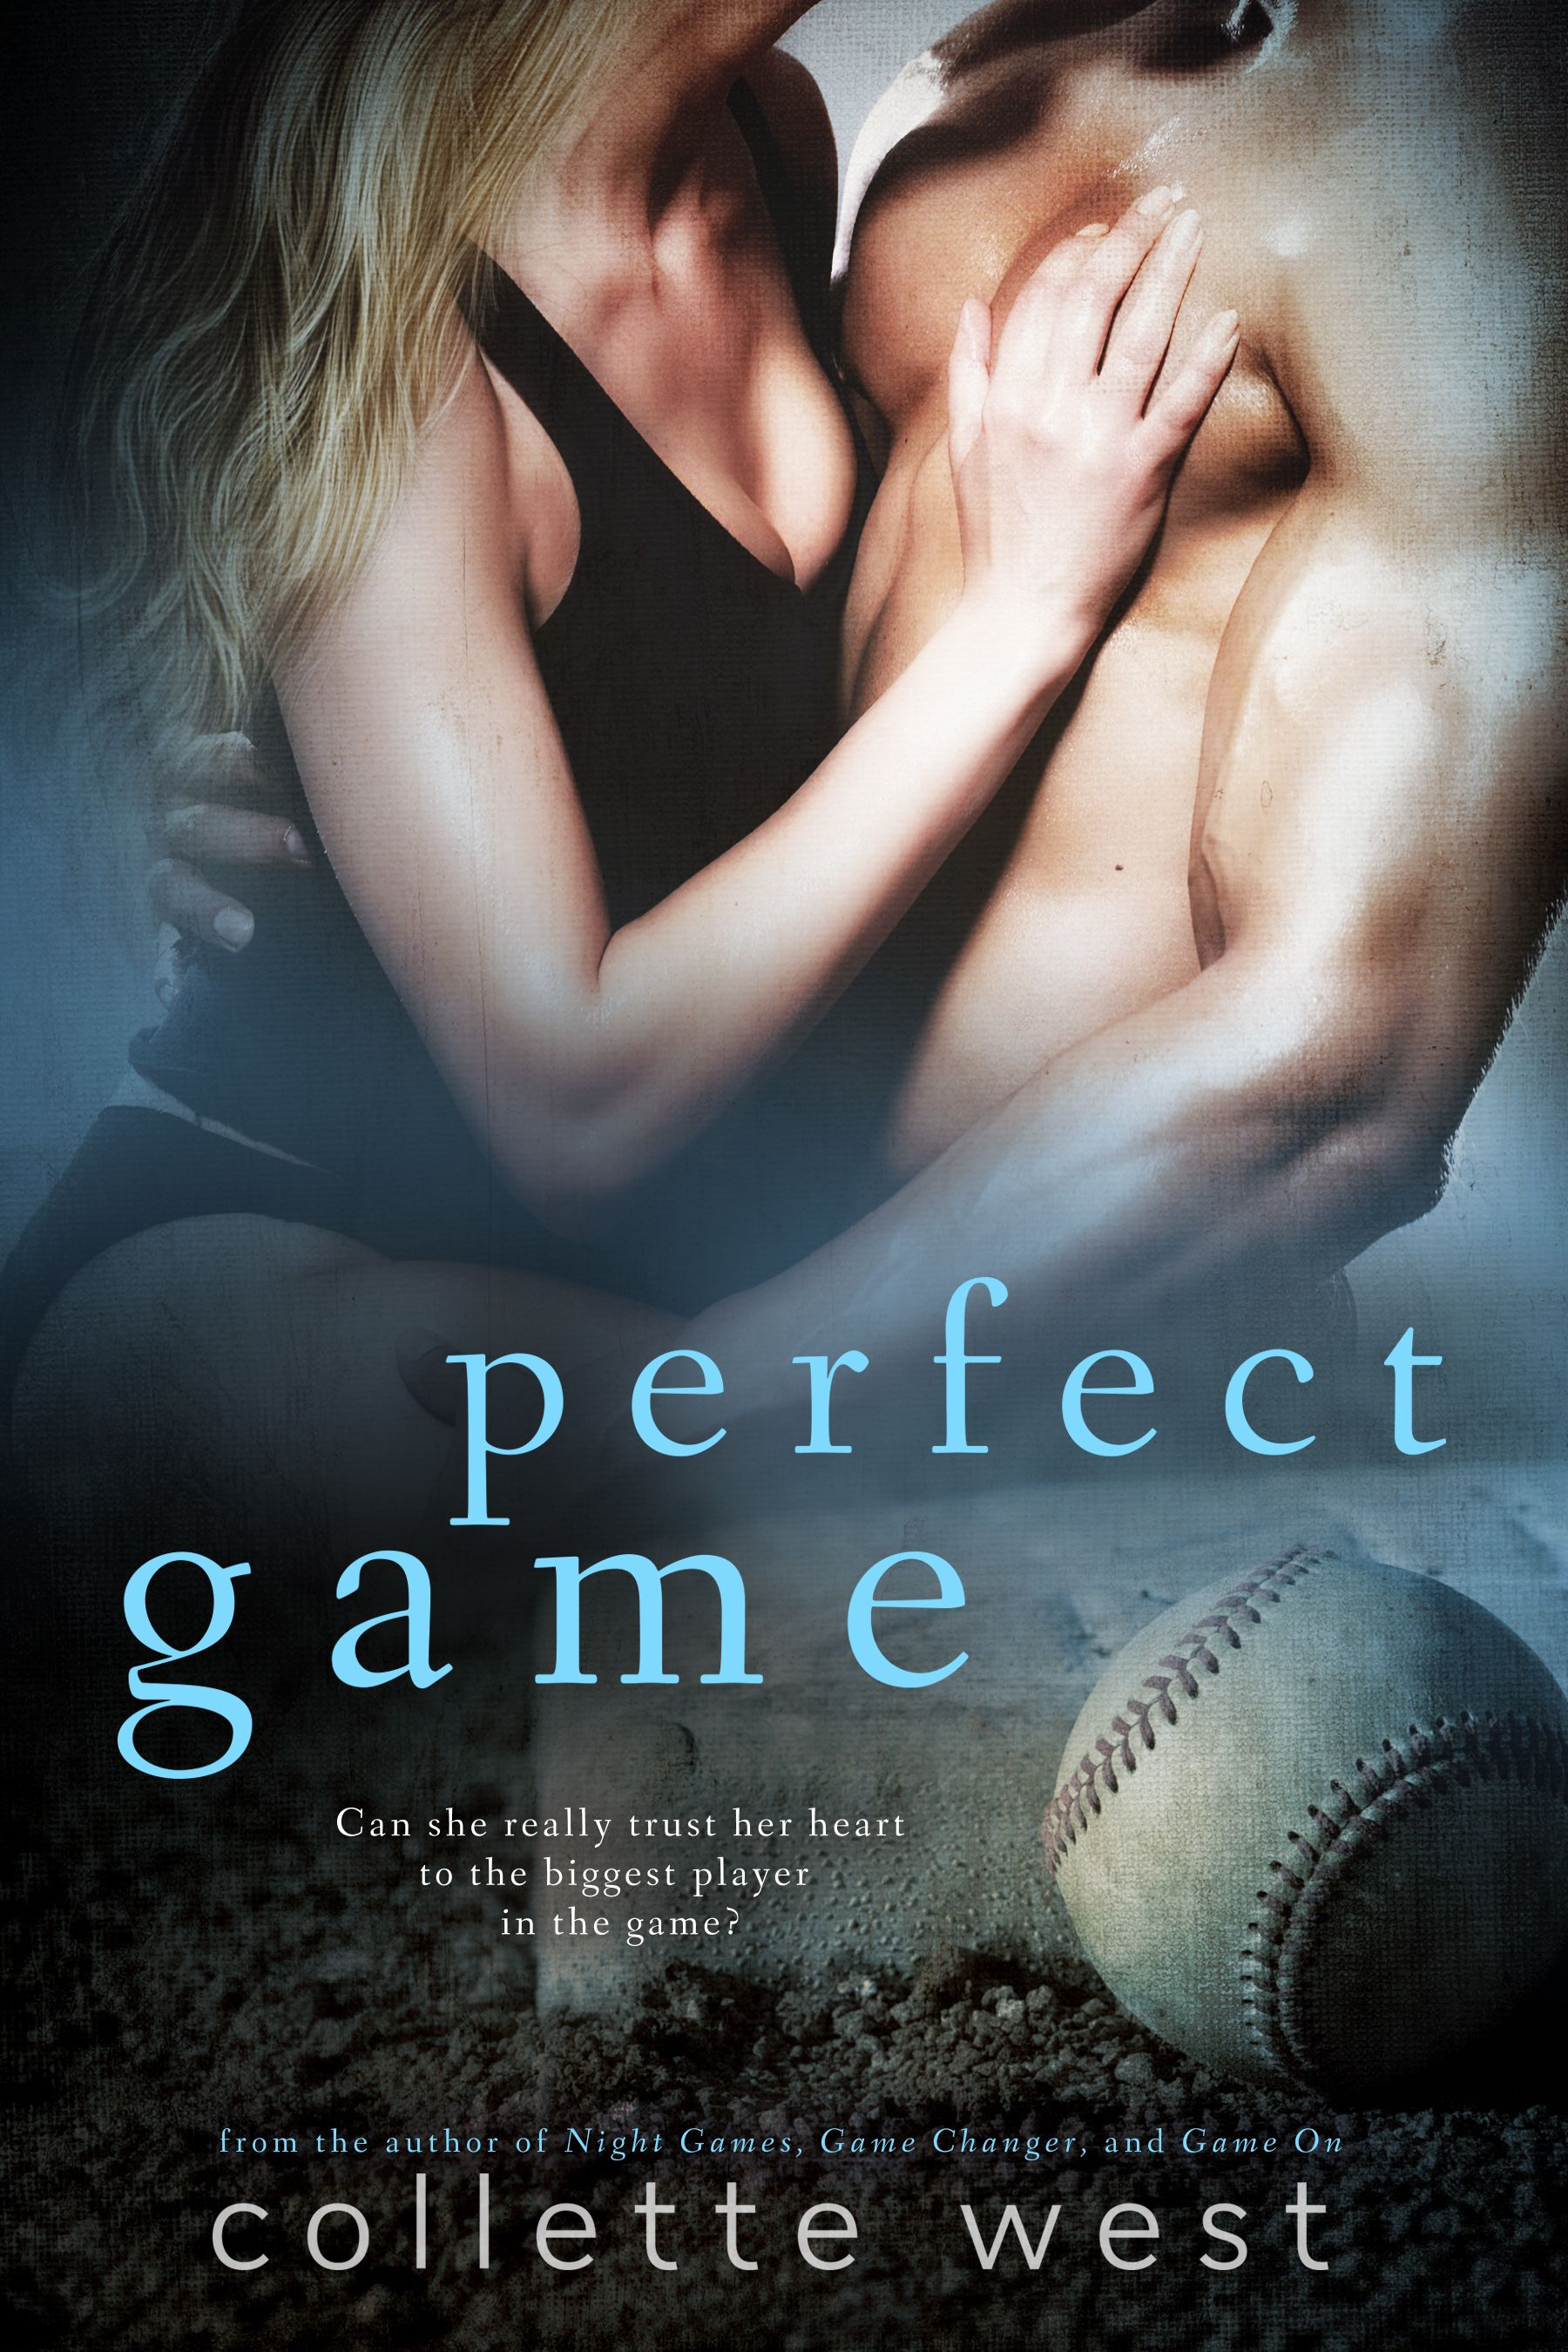 PerfectGame Perfect game, Book review blogs, Getting him